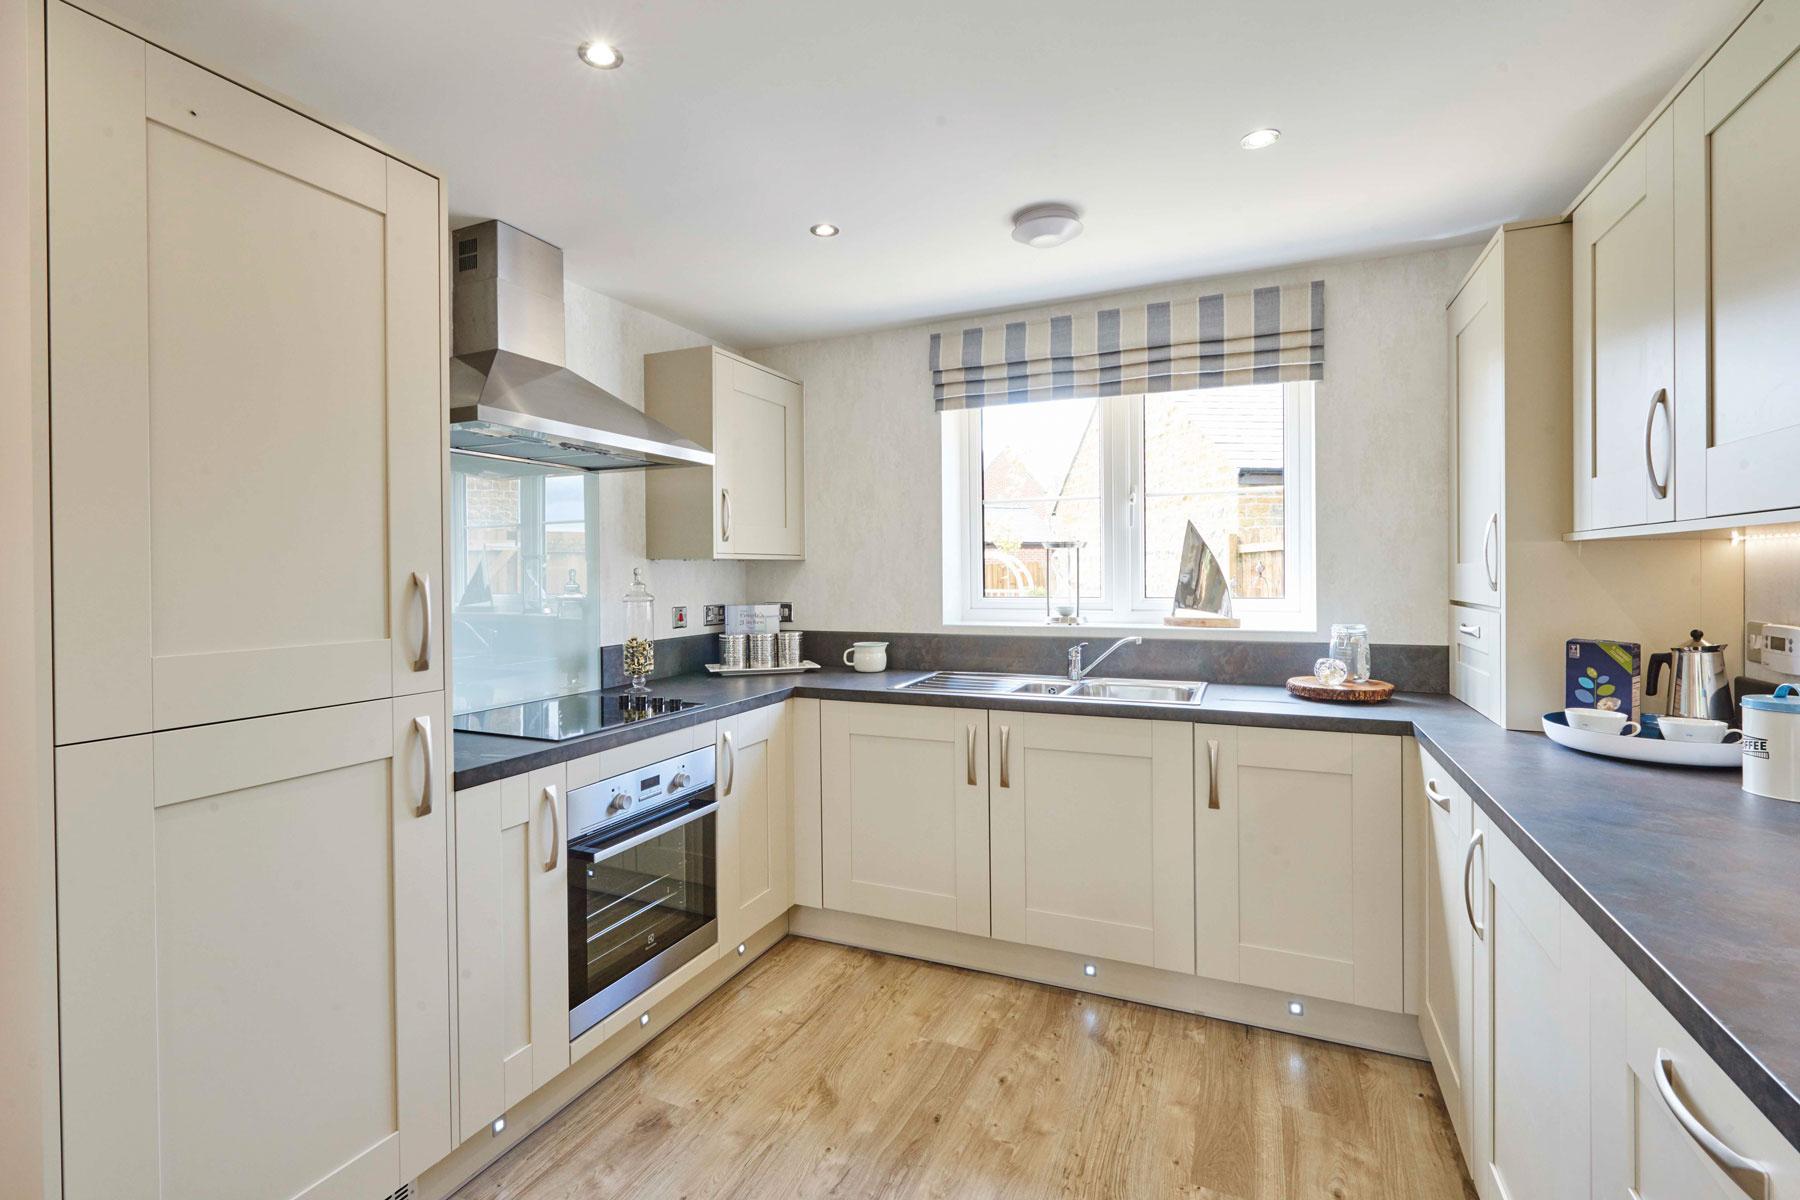 Taylor Wimpey Exeter - Cranbrook - Easdale example kitchen